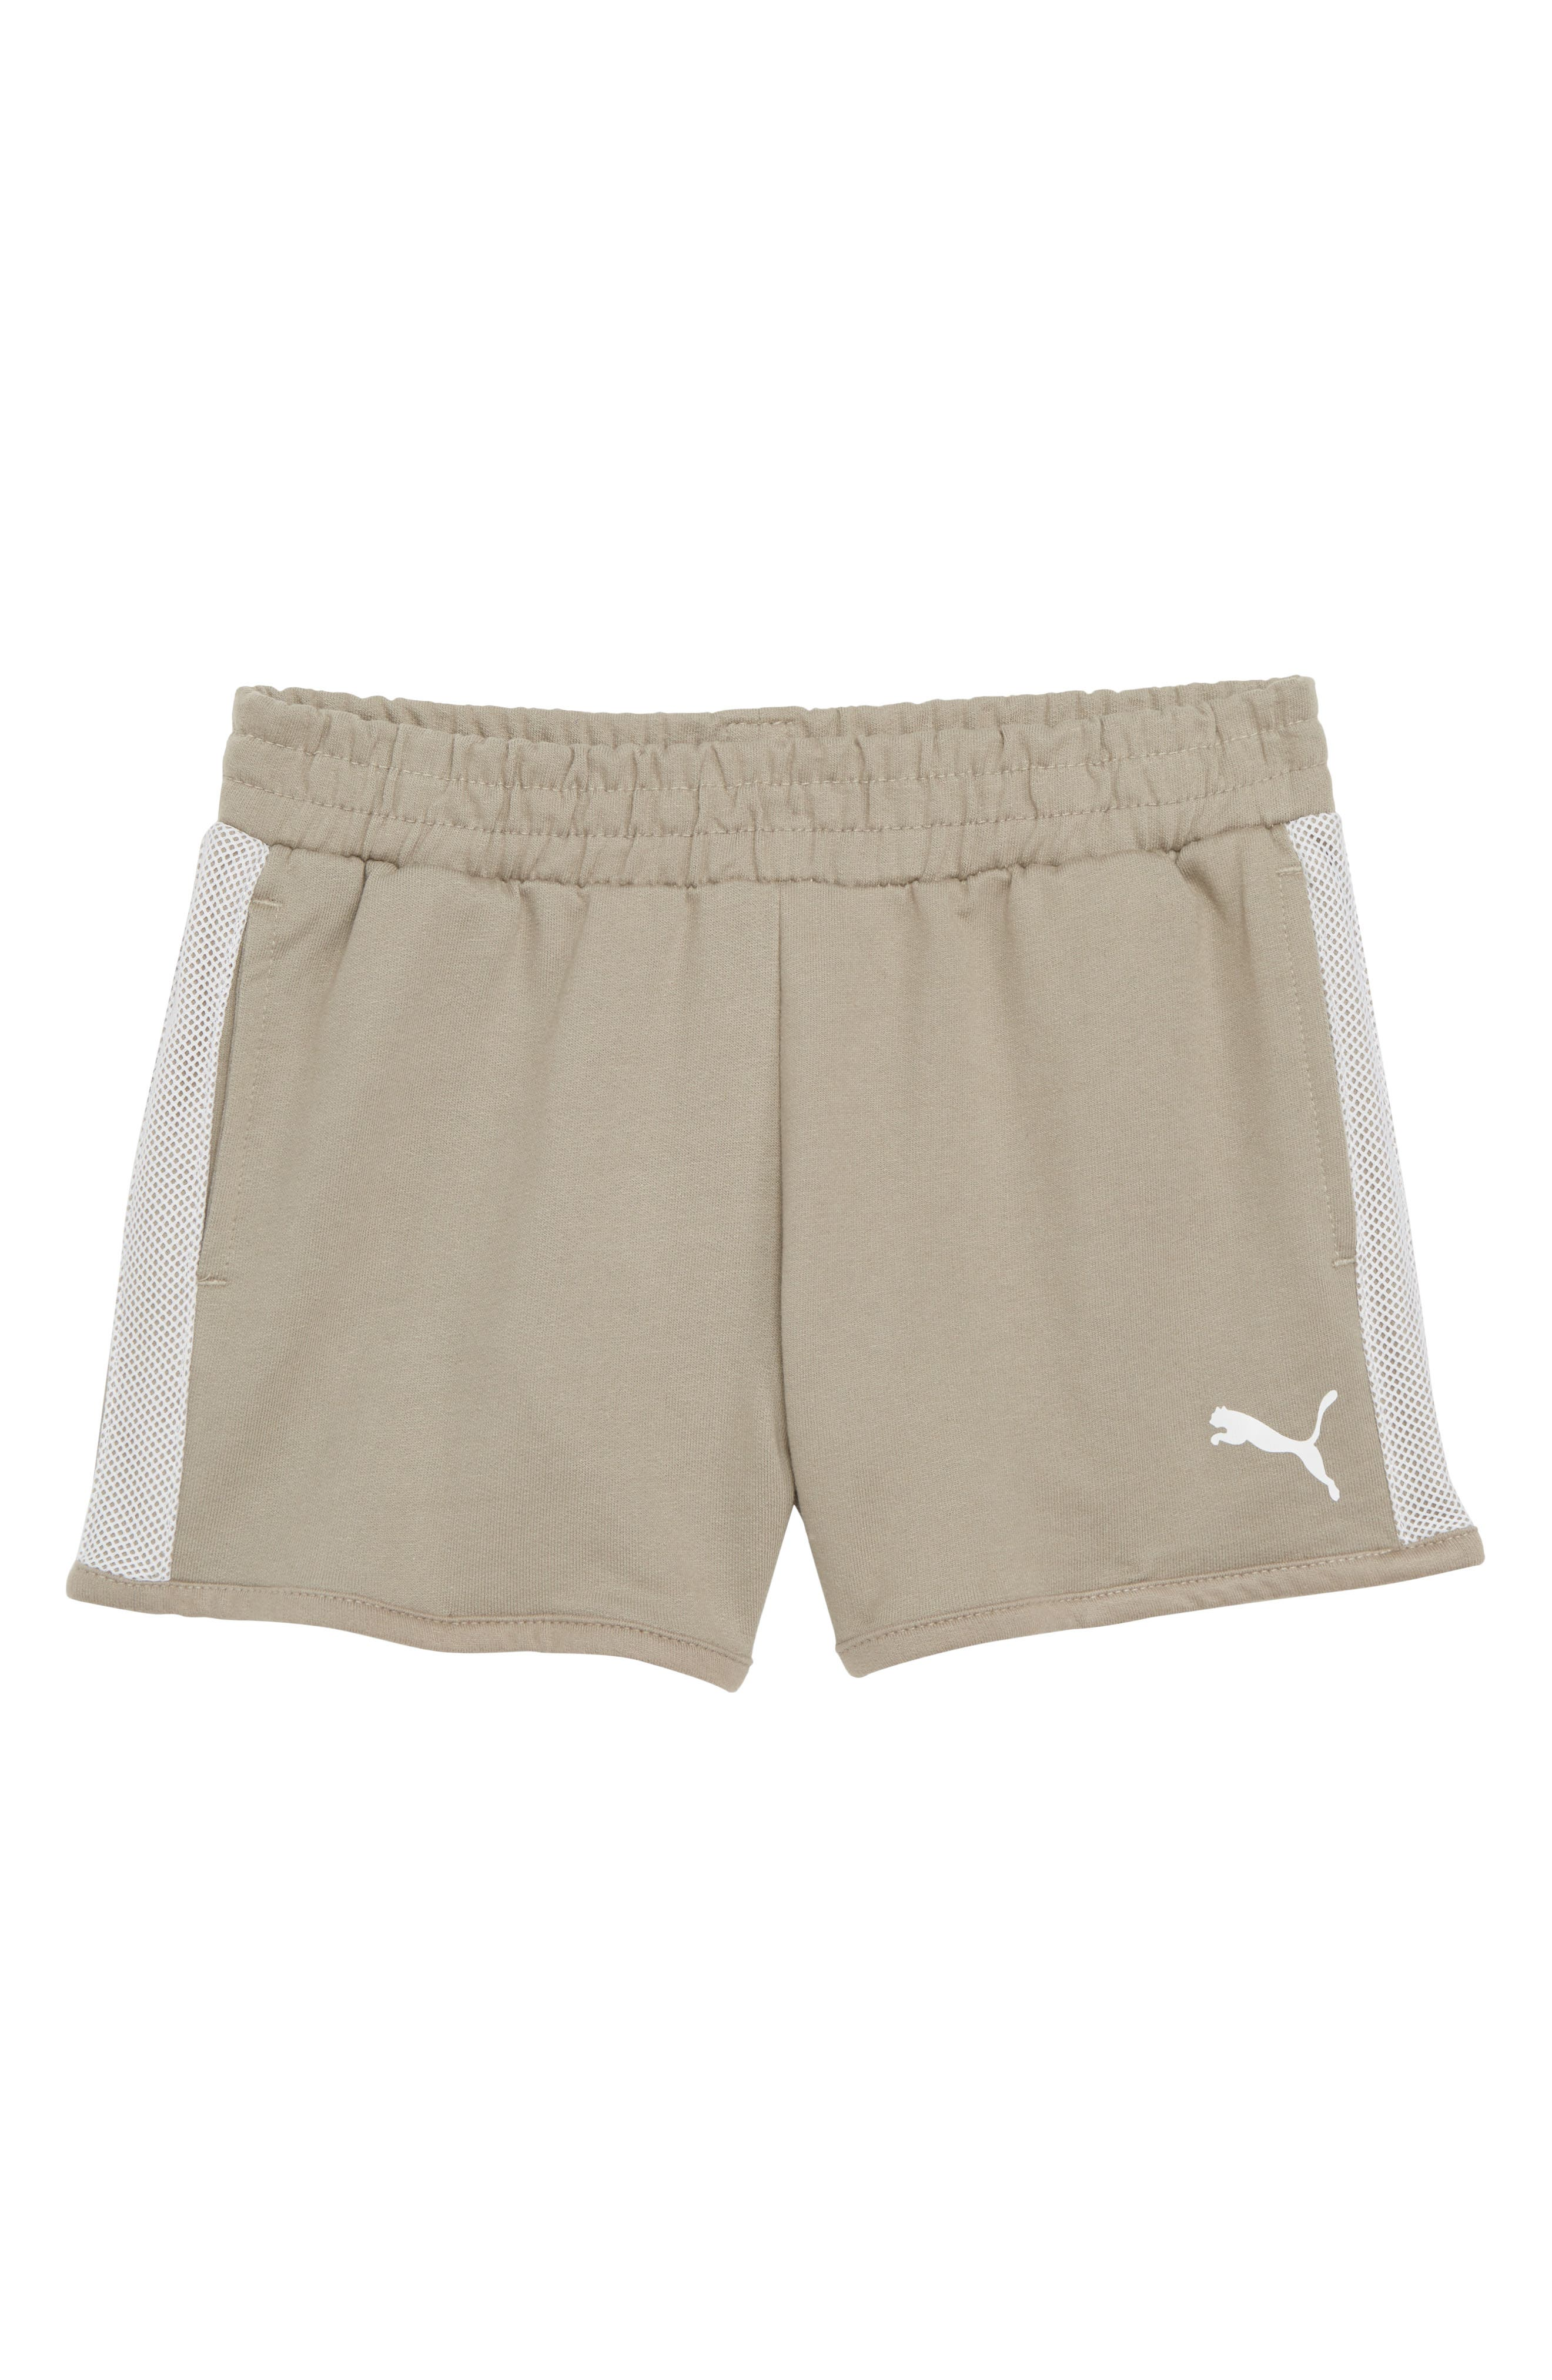 French Terry Shorts,                         Main,                         color, 255